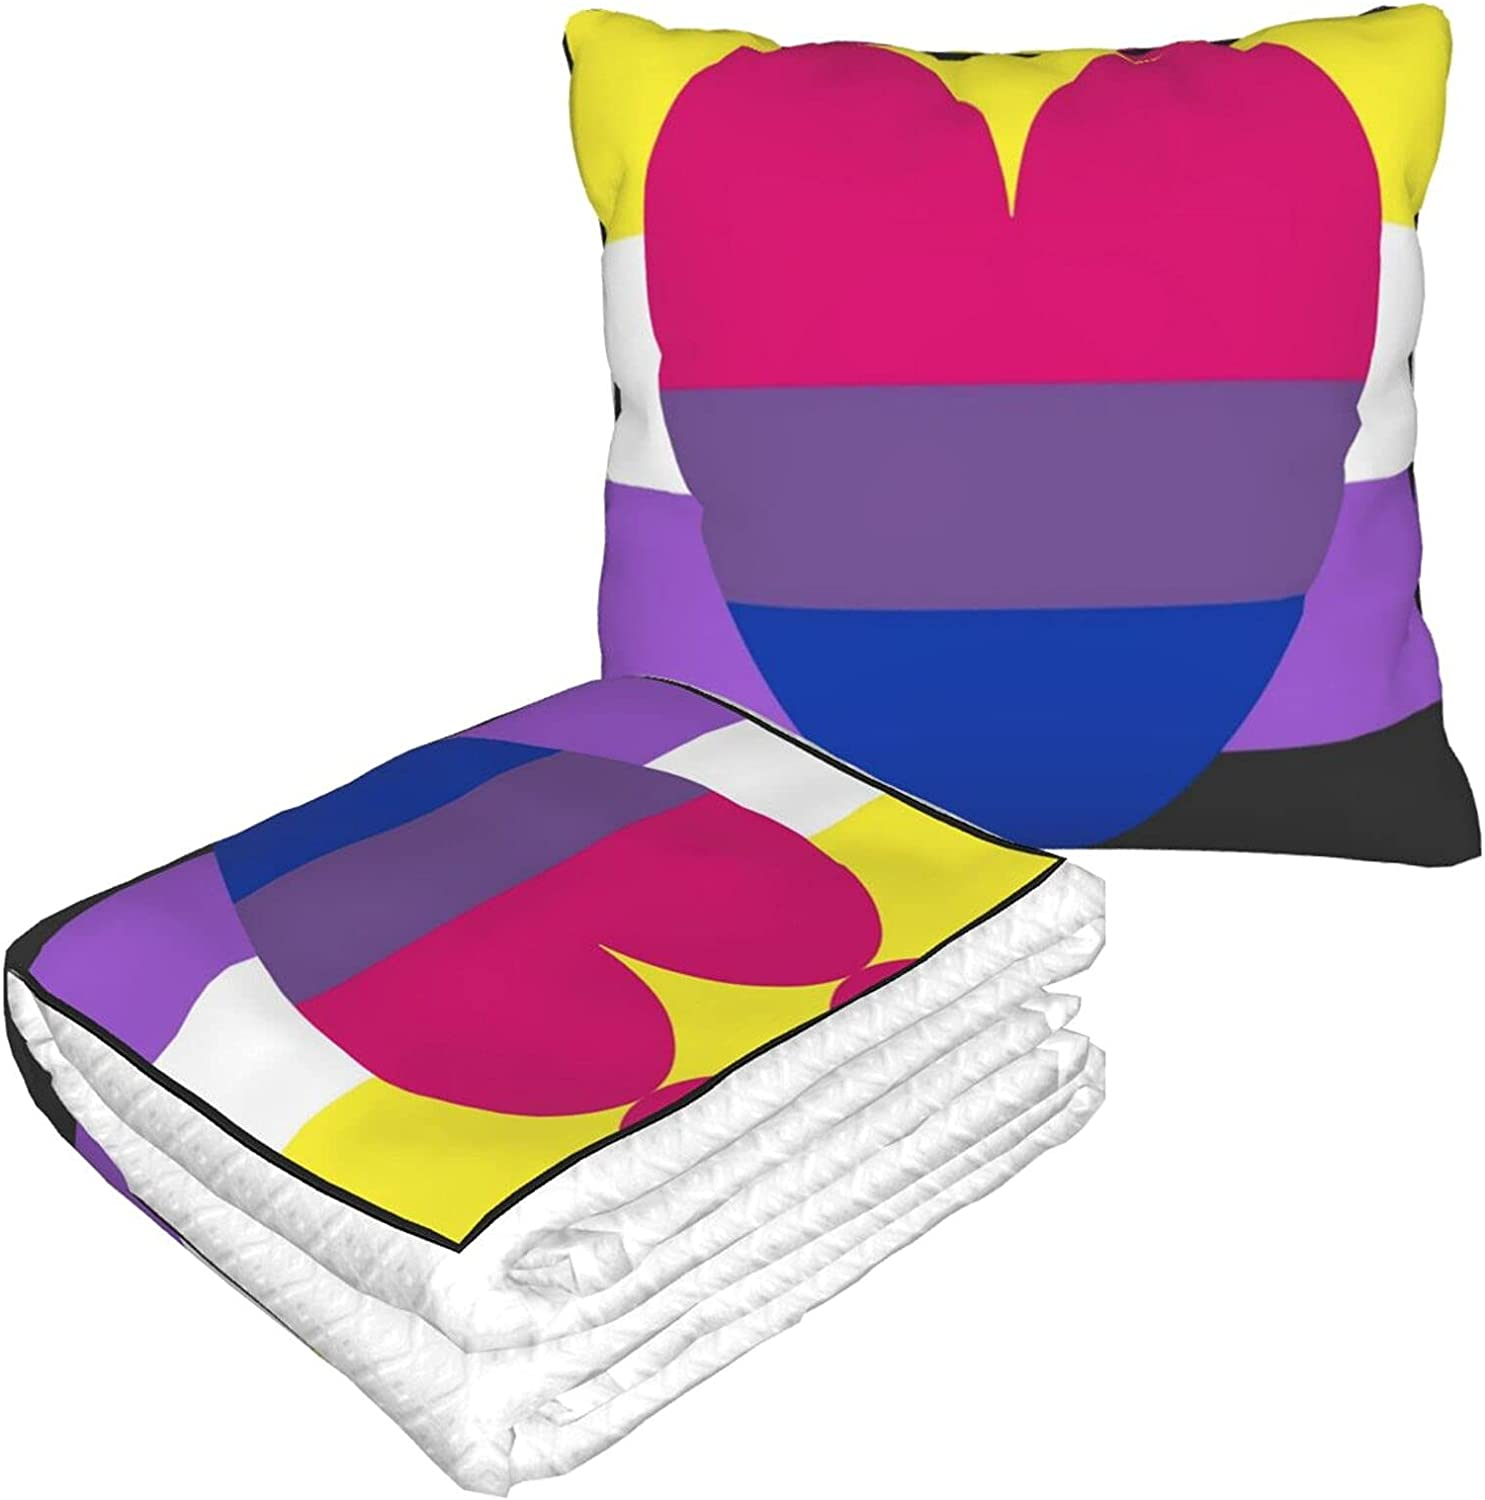 Foldable Pillow Blanket Non Indianapolis Mall Binary Bisexual Pride Trave for Popular popular Flag